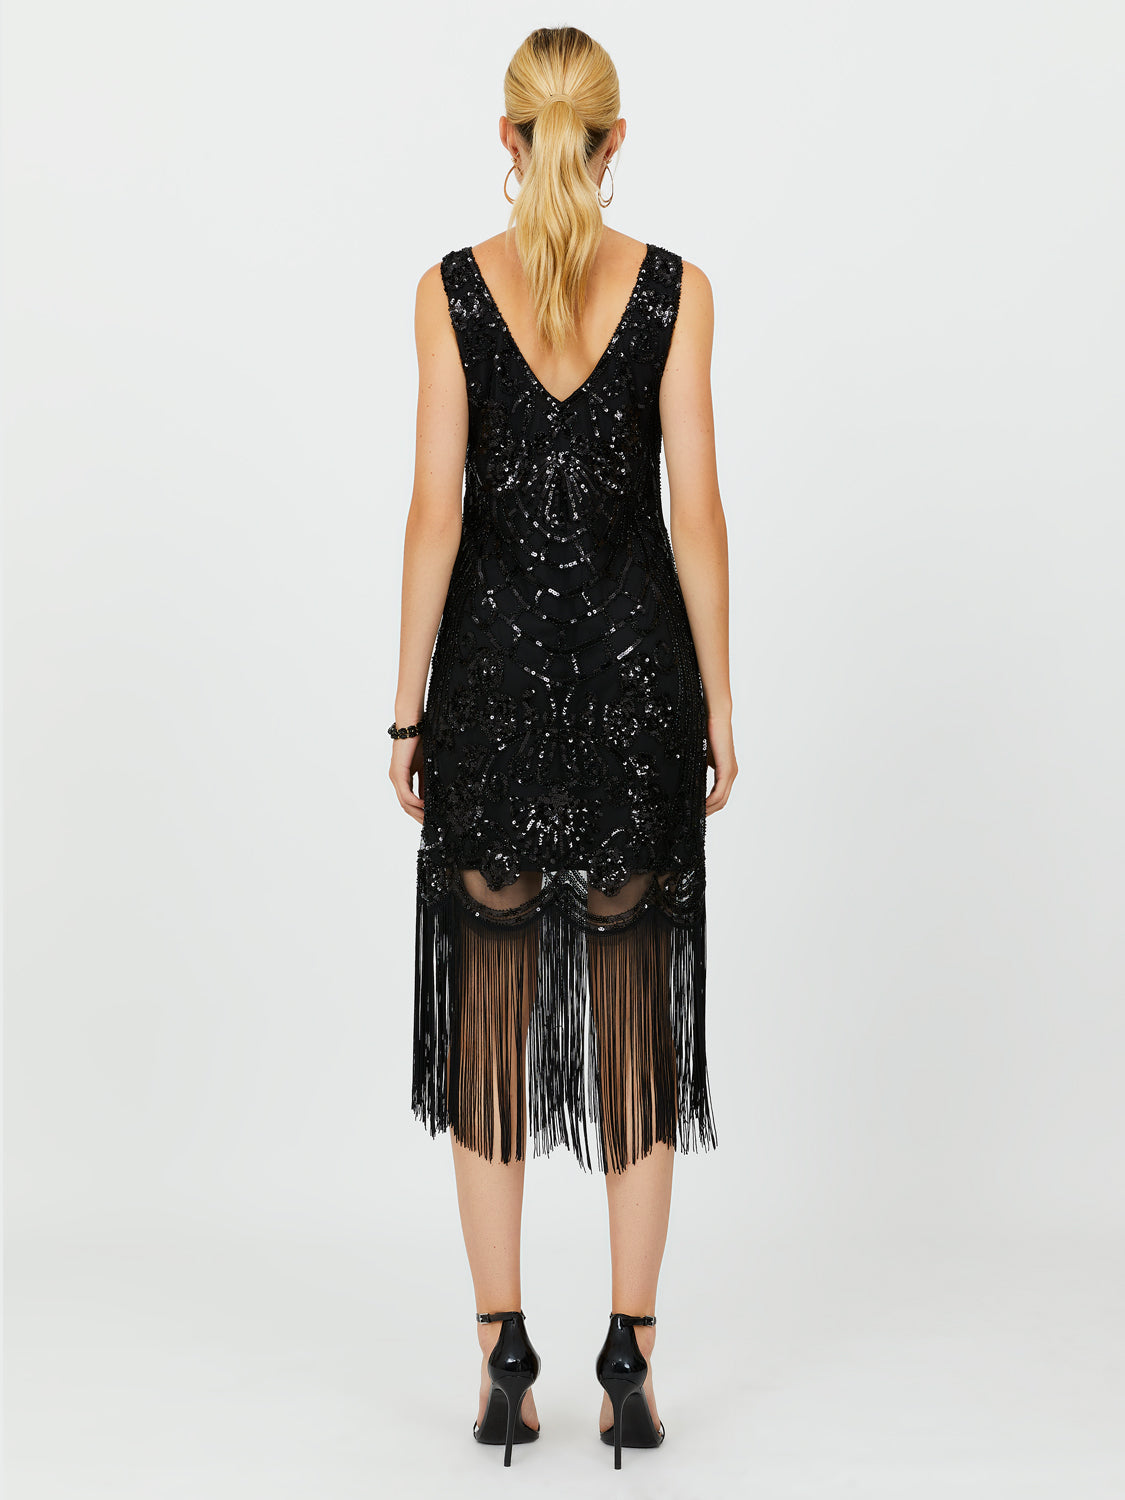 Pull-On Sleeveless V-Neck Mesh & Sequin Dress